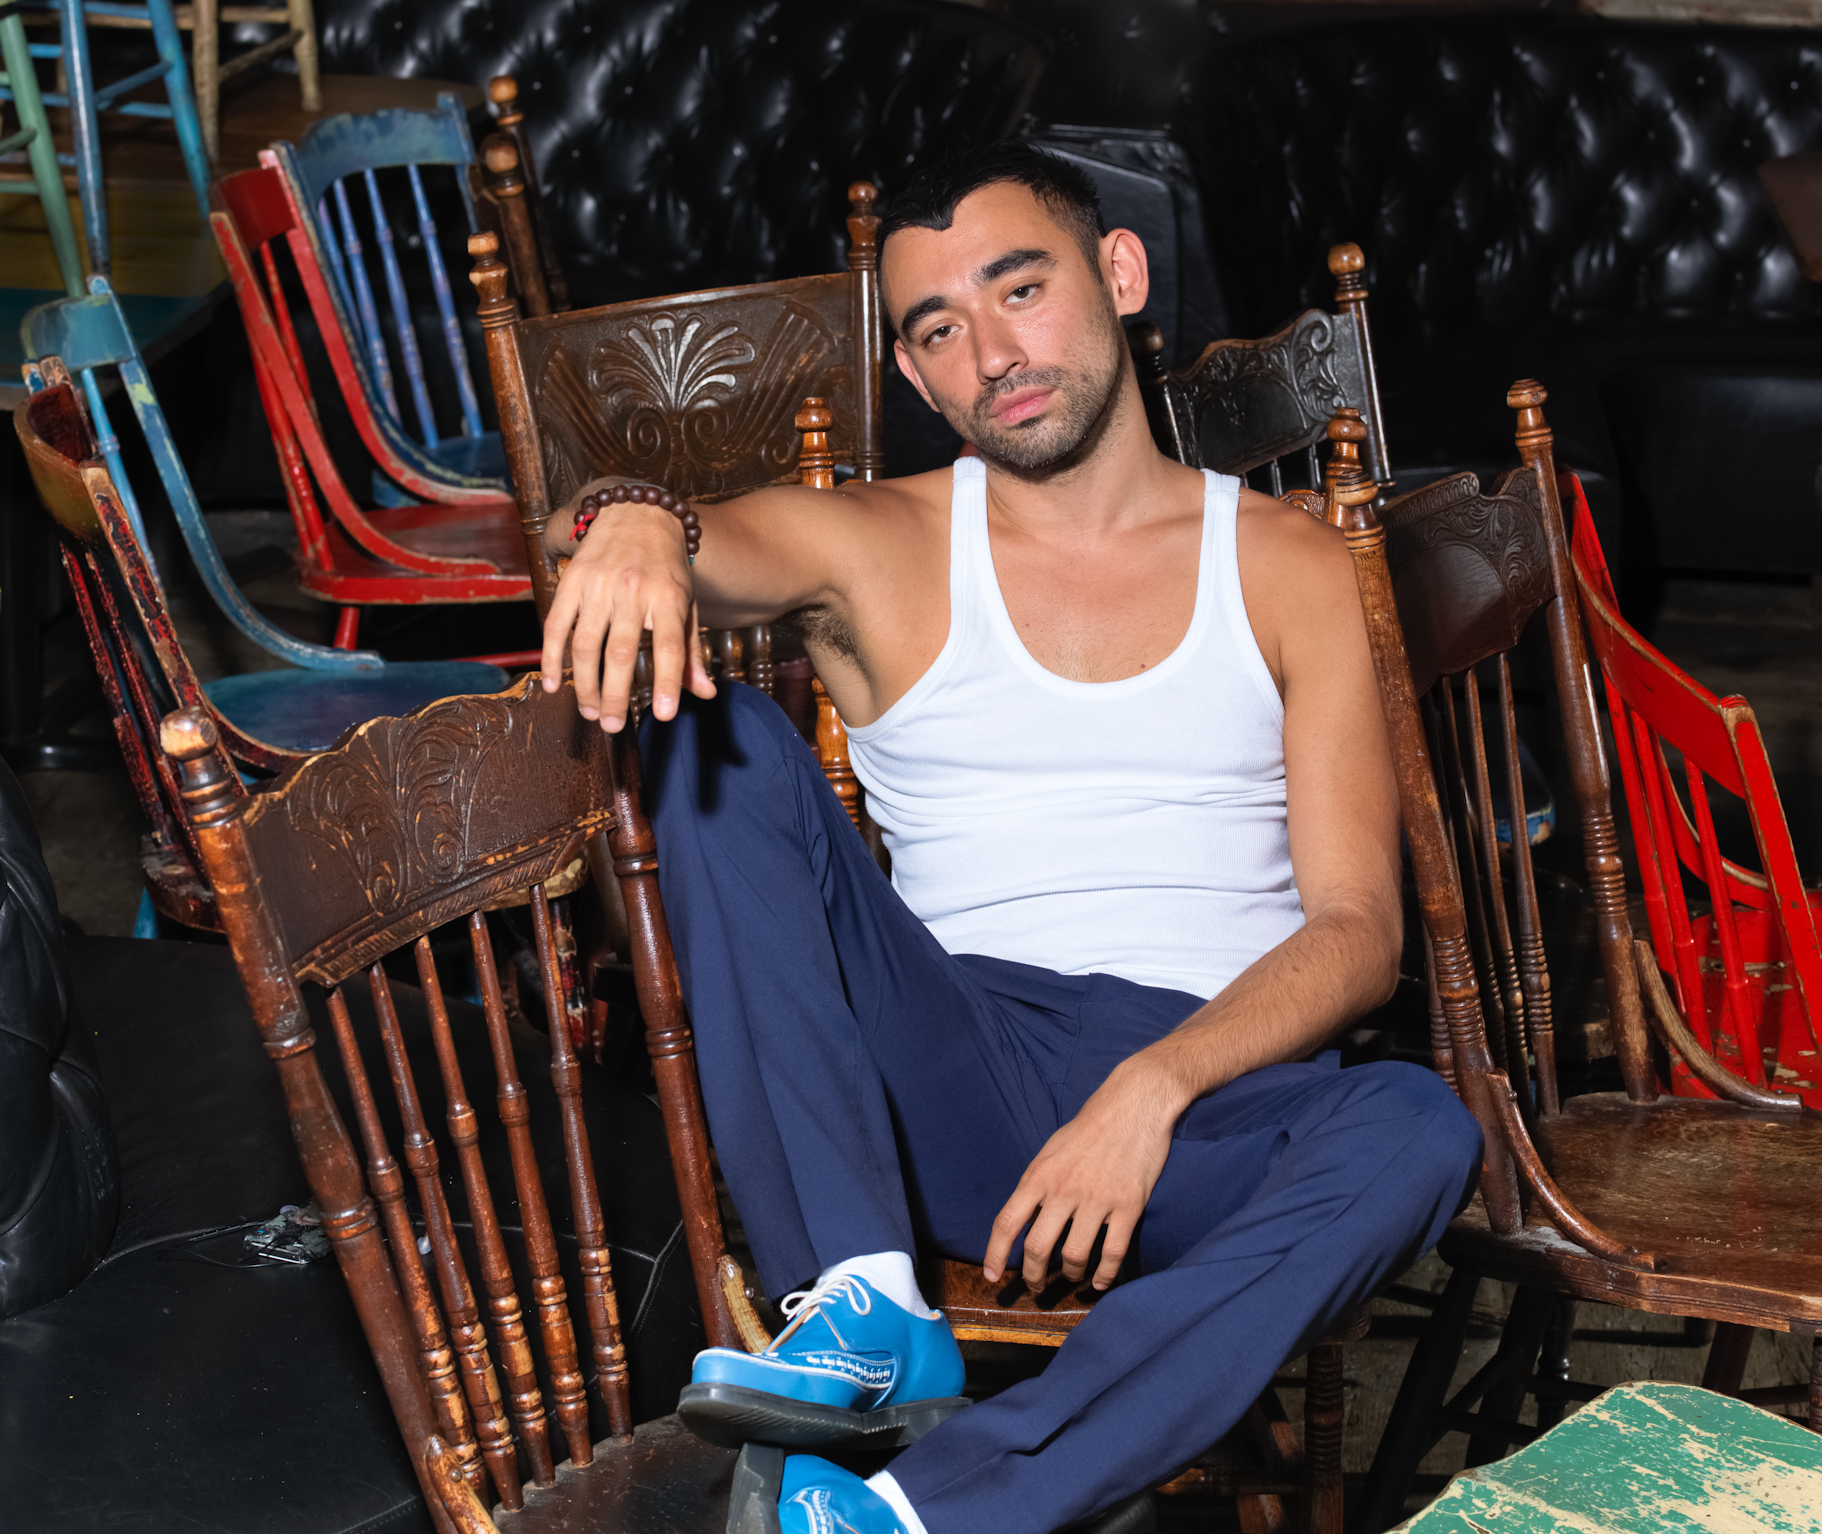 Fashion director and fashion editor Nicola Formichetti at La Esquina in New York